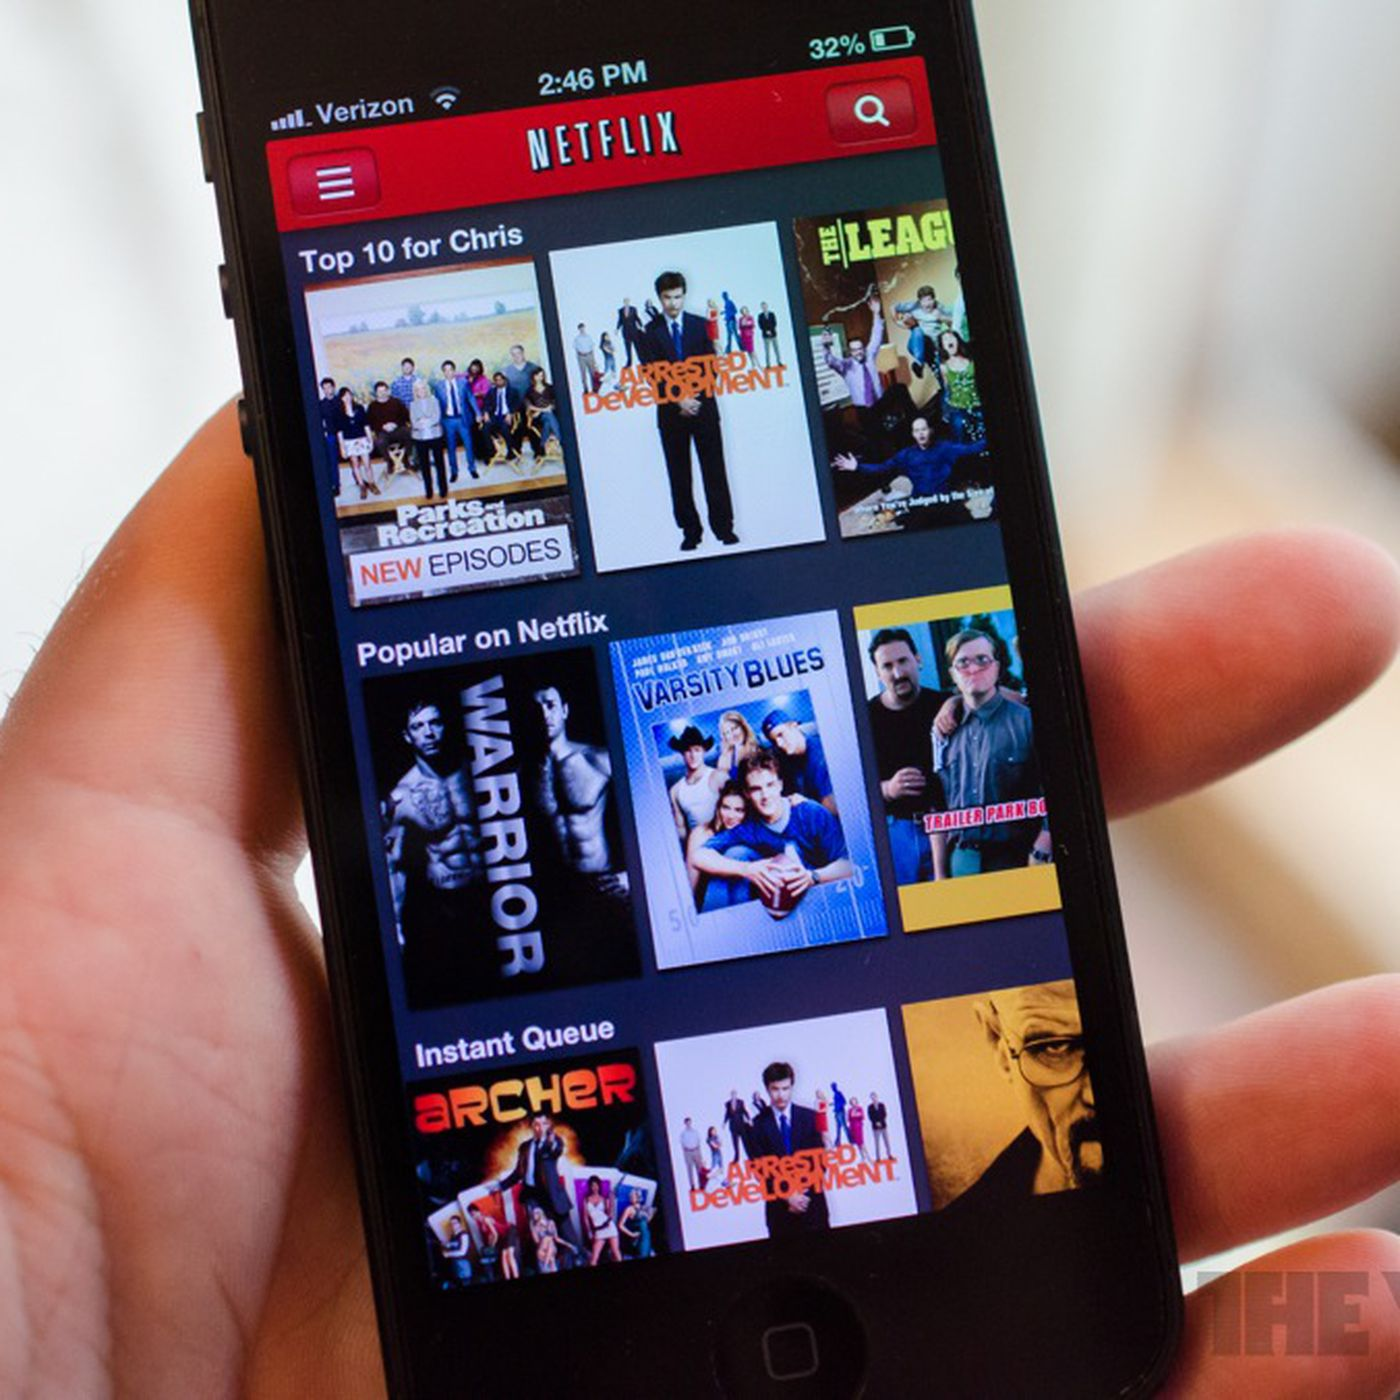 theverge.com - Julia Alexander - Netflix is testing cheaper mobile-only subscription tiers